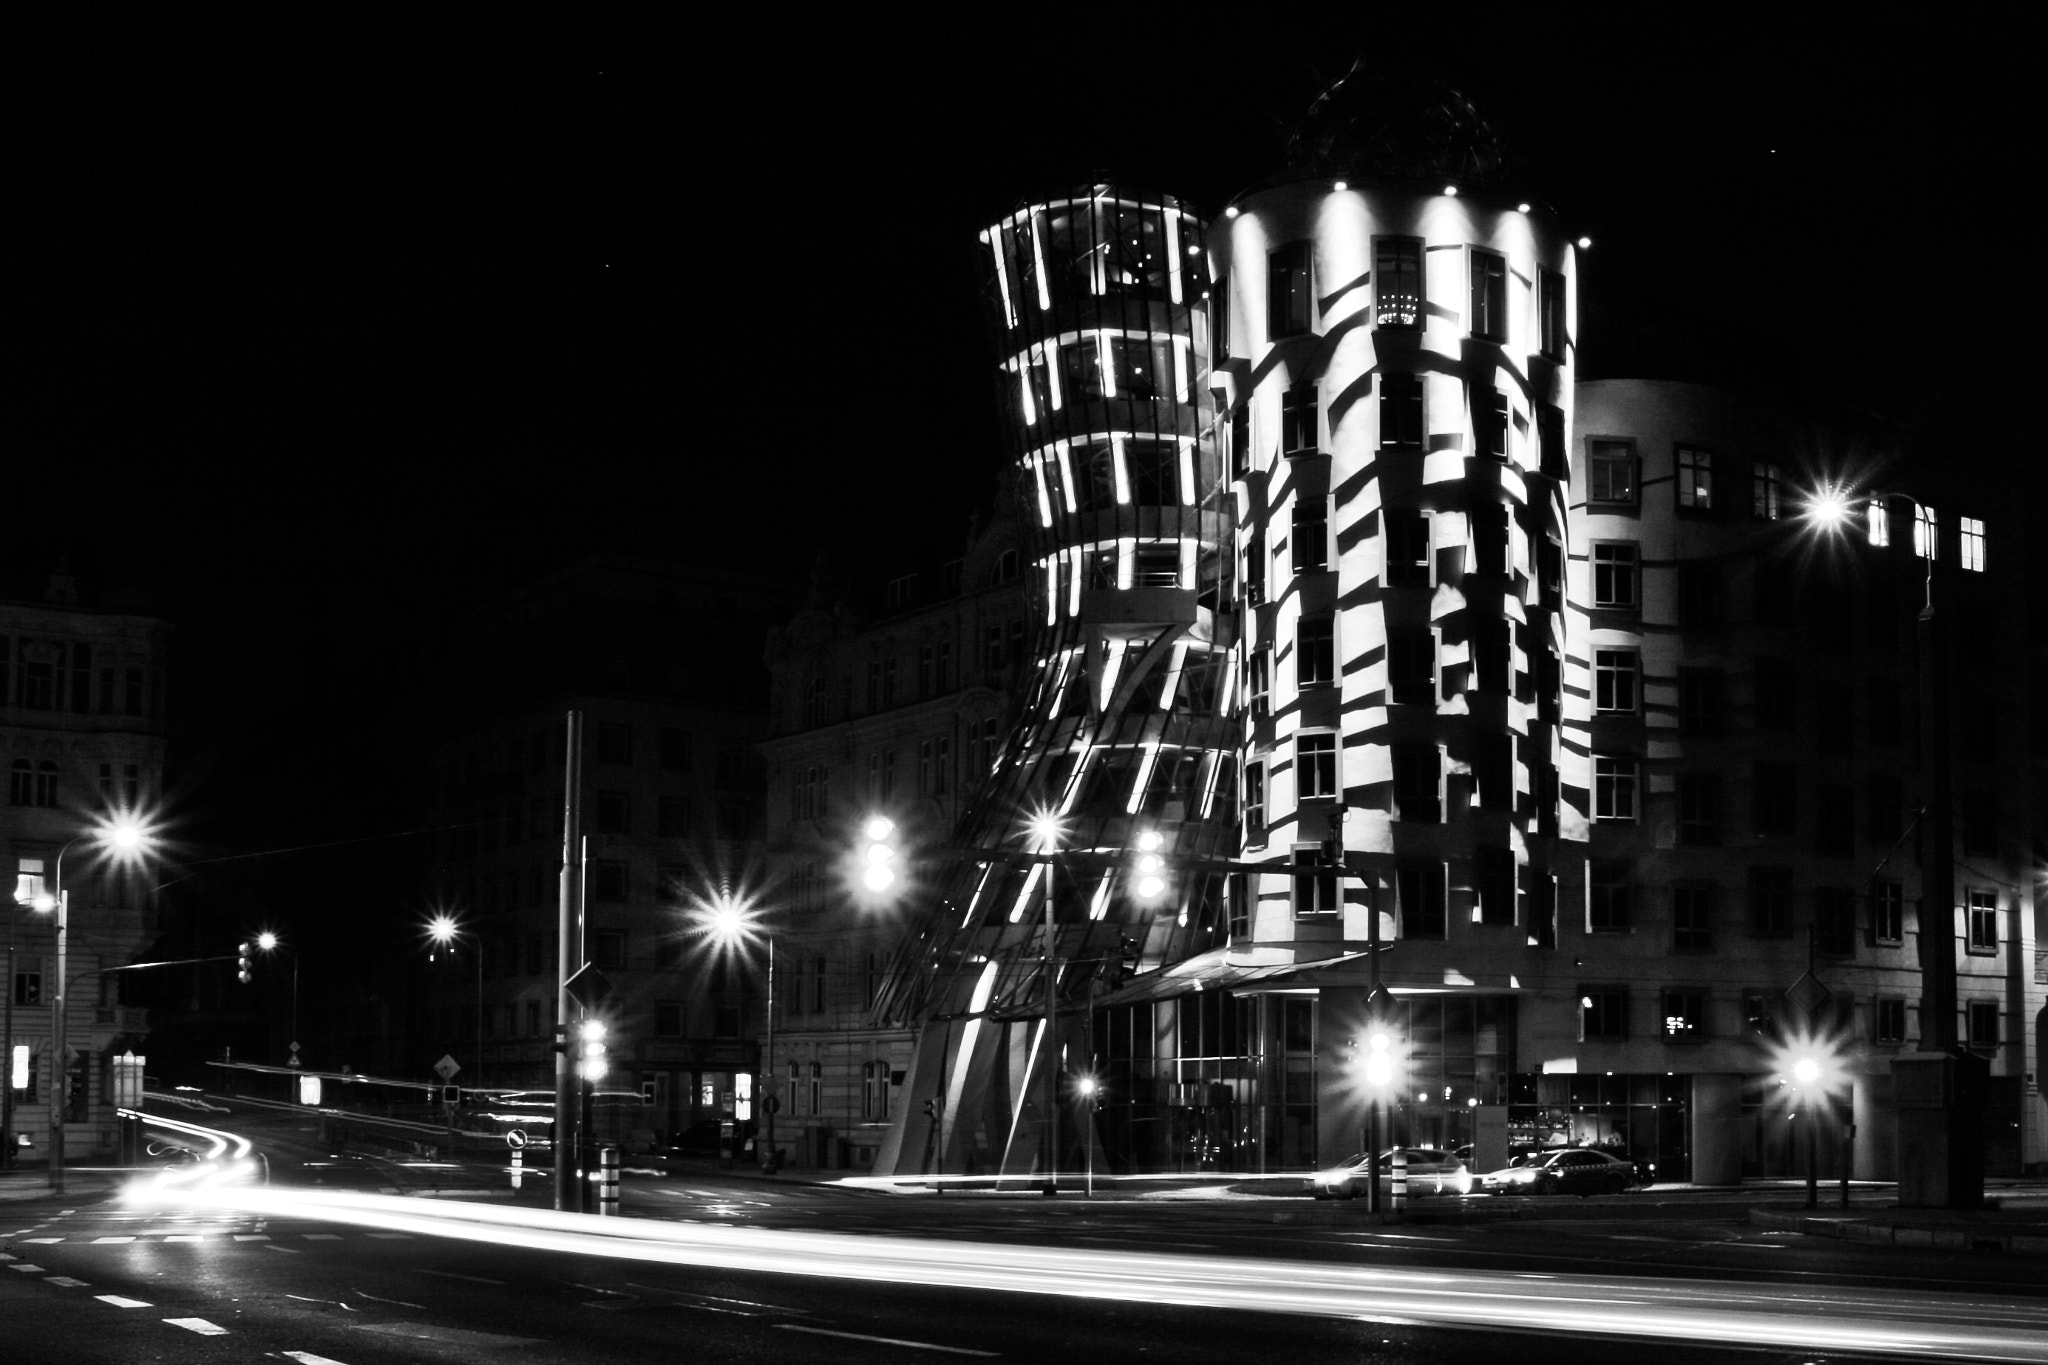 Photograph Dancing building by Cosmin Tărţan on 500px